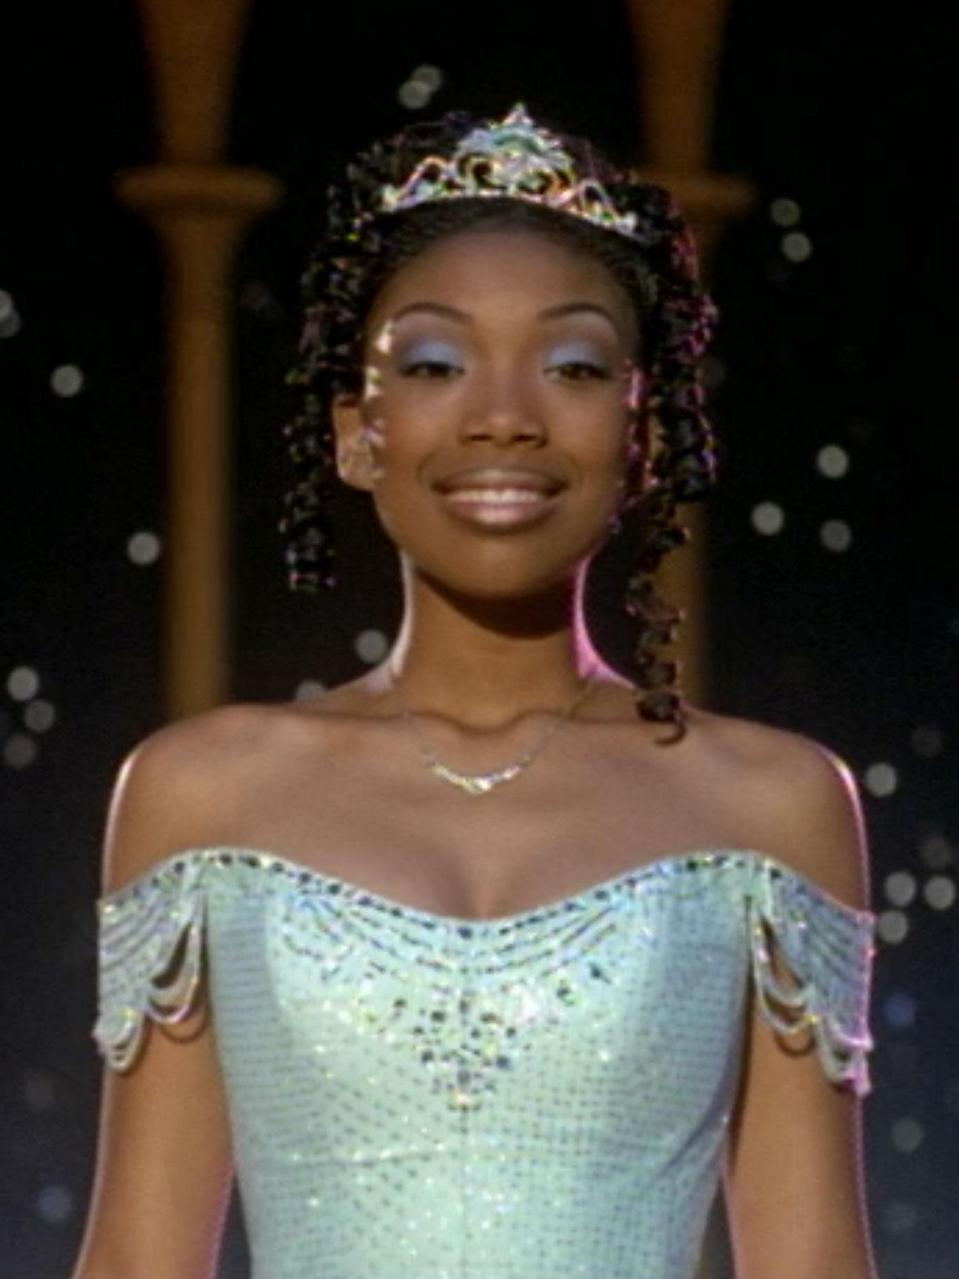 """<p>Aside from the UPN series, Brandy totally changed the game when she starred in <em>Cinderella. </em>With her performance, finally, we were able to see the classic fairytale in a whole new light. This version (which also starred the incredible Whitney Houston) proved that Black girls, with our brown skin, wide noses, and braids — features we were taught were """"wrong"""" or """"bad"""" — could be princesses, too. </p>"""